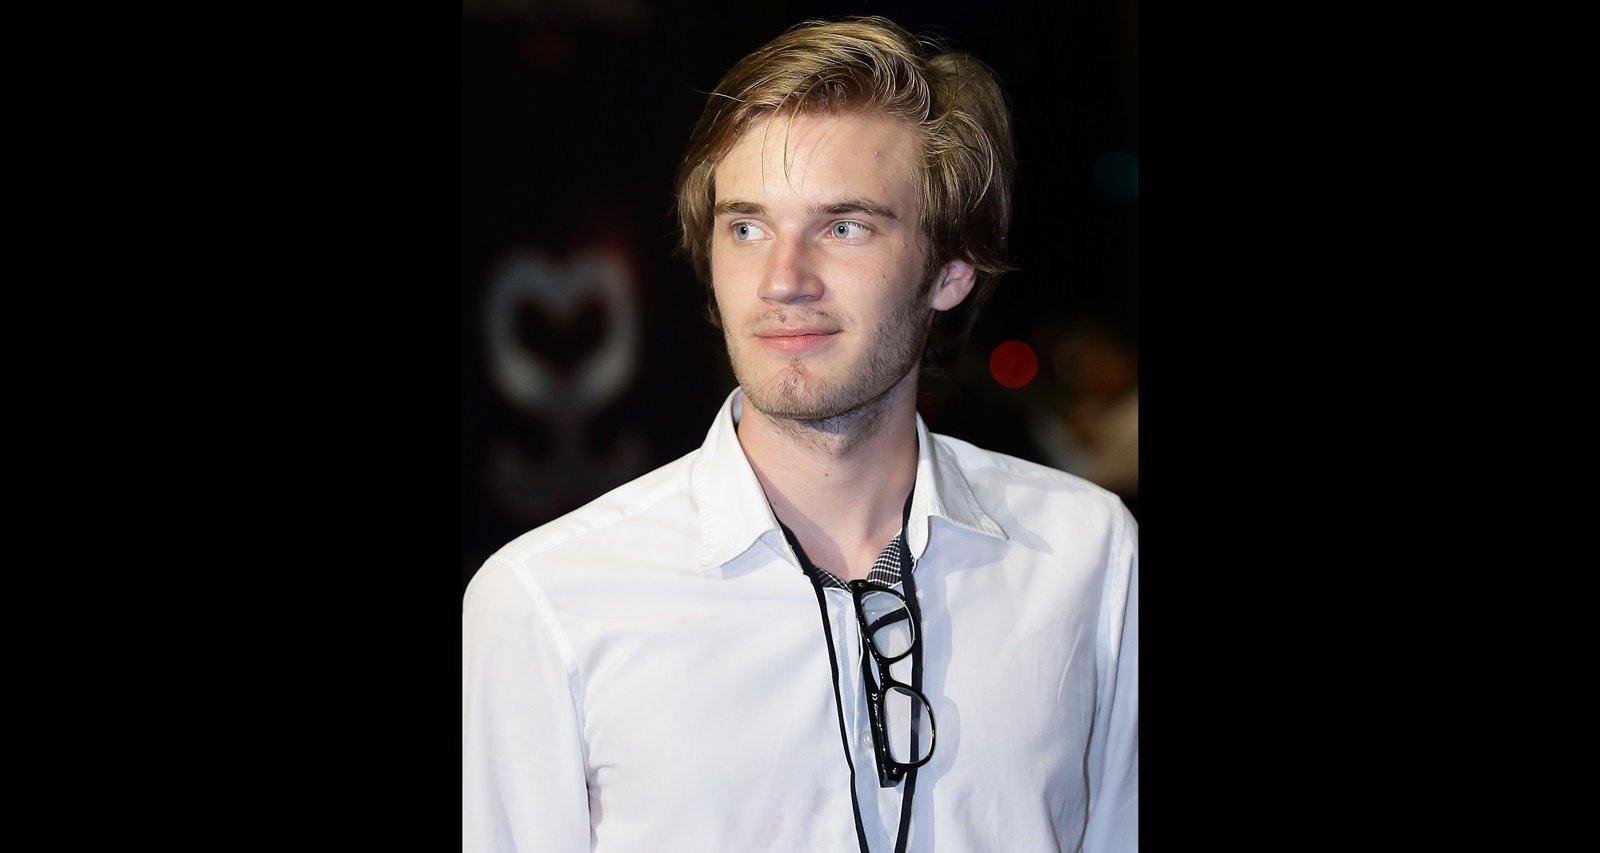 Pewdiepie Donates $50,000 to ADL: Was He Really Blackmailed? What Happened?